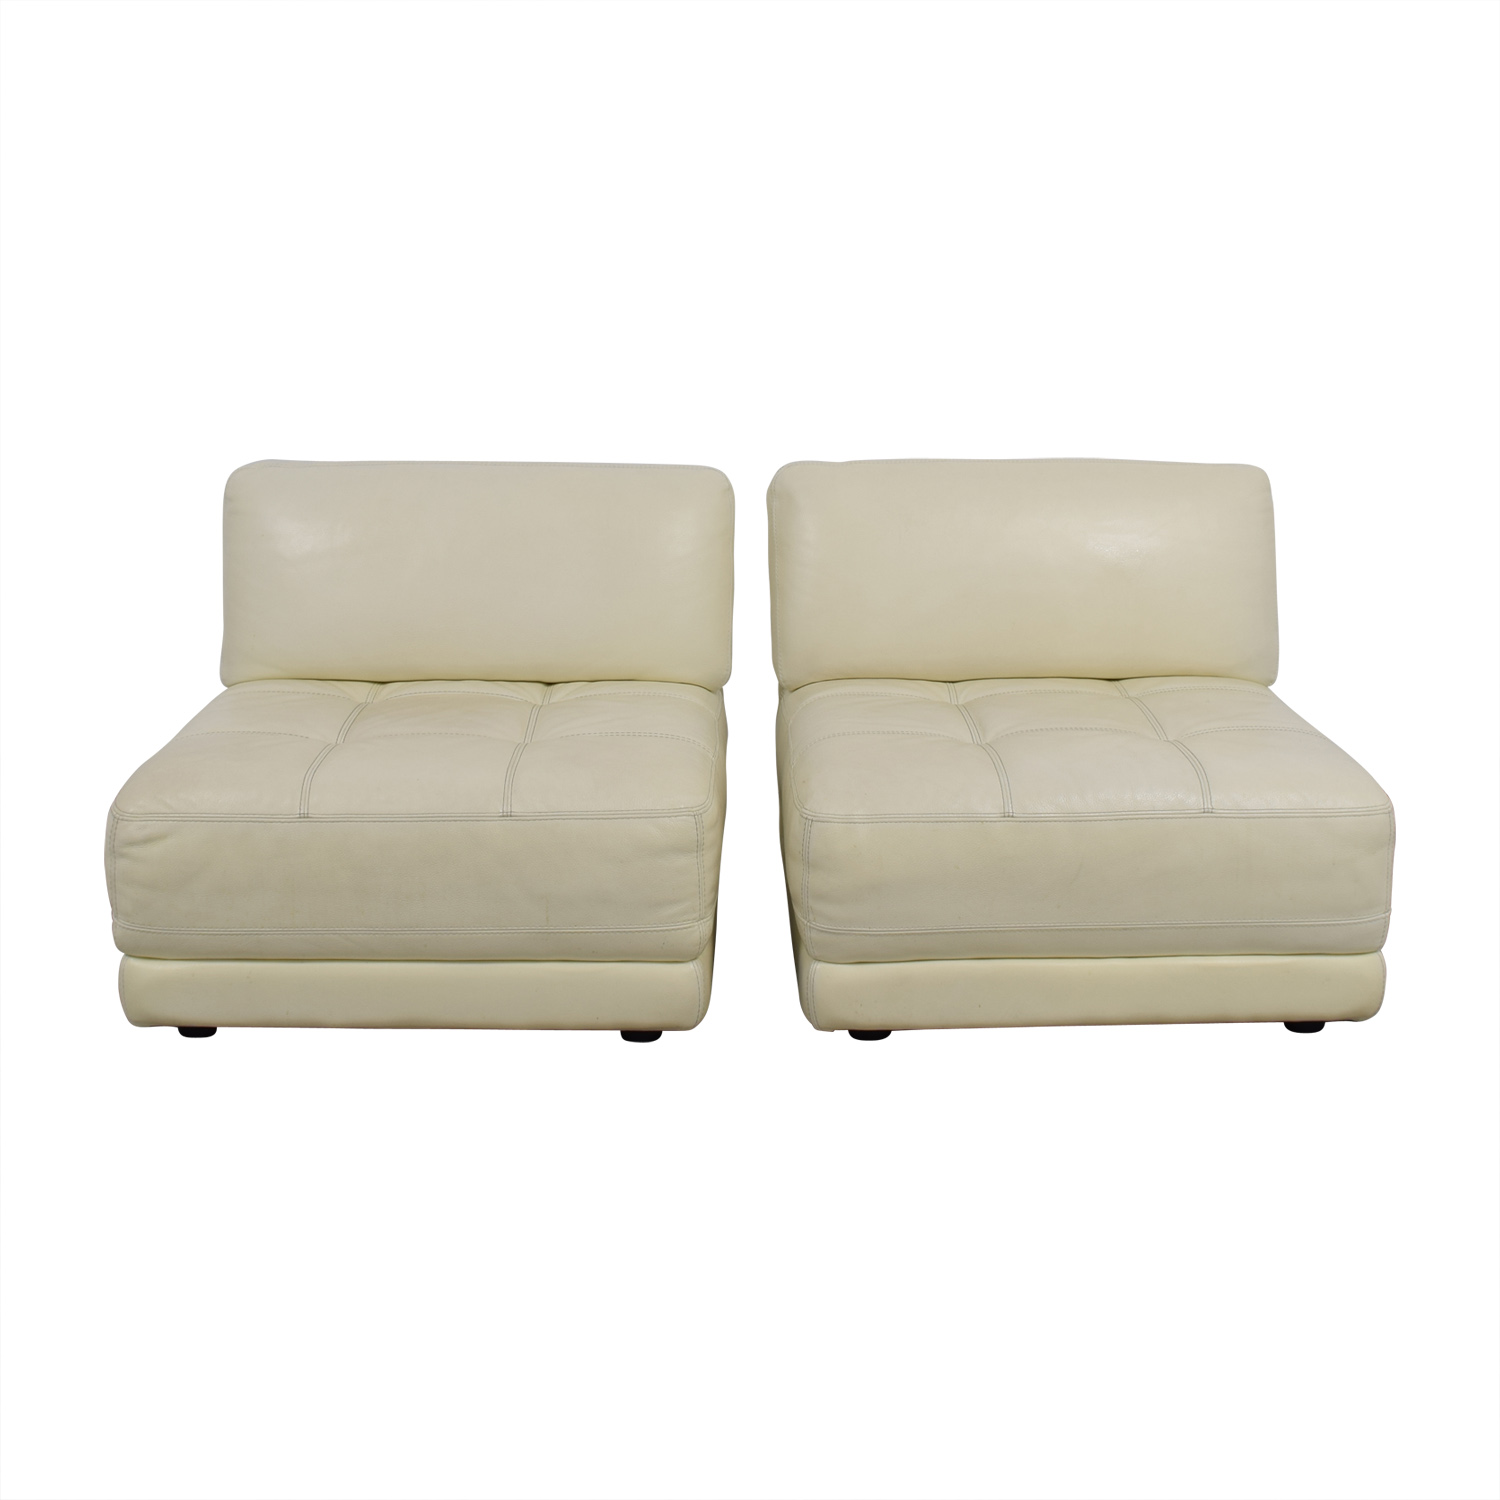 Macys Leather Chair 90 Off Macy S Macy S Modulara White Leather Chairs Chairs